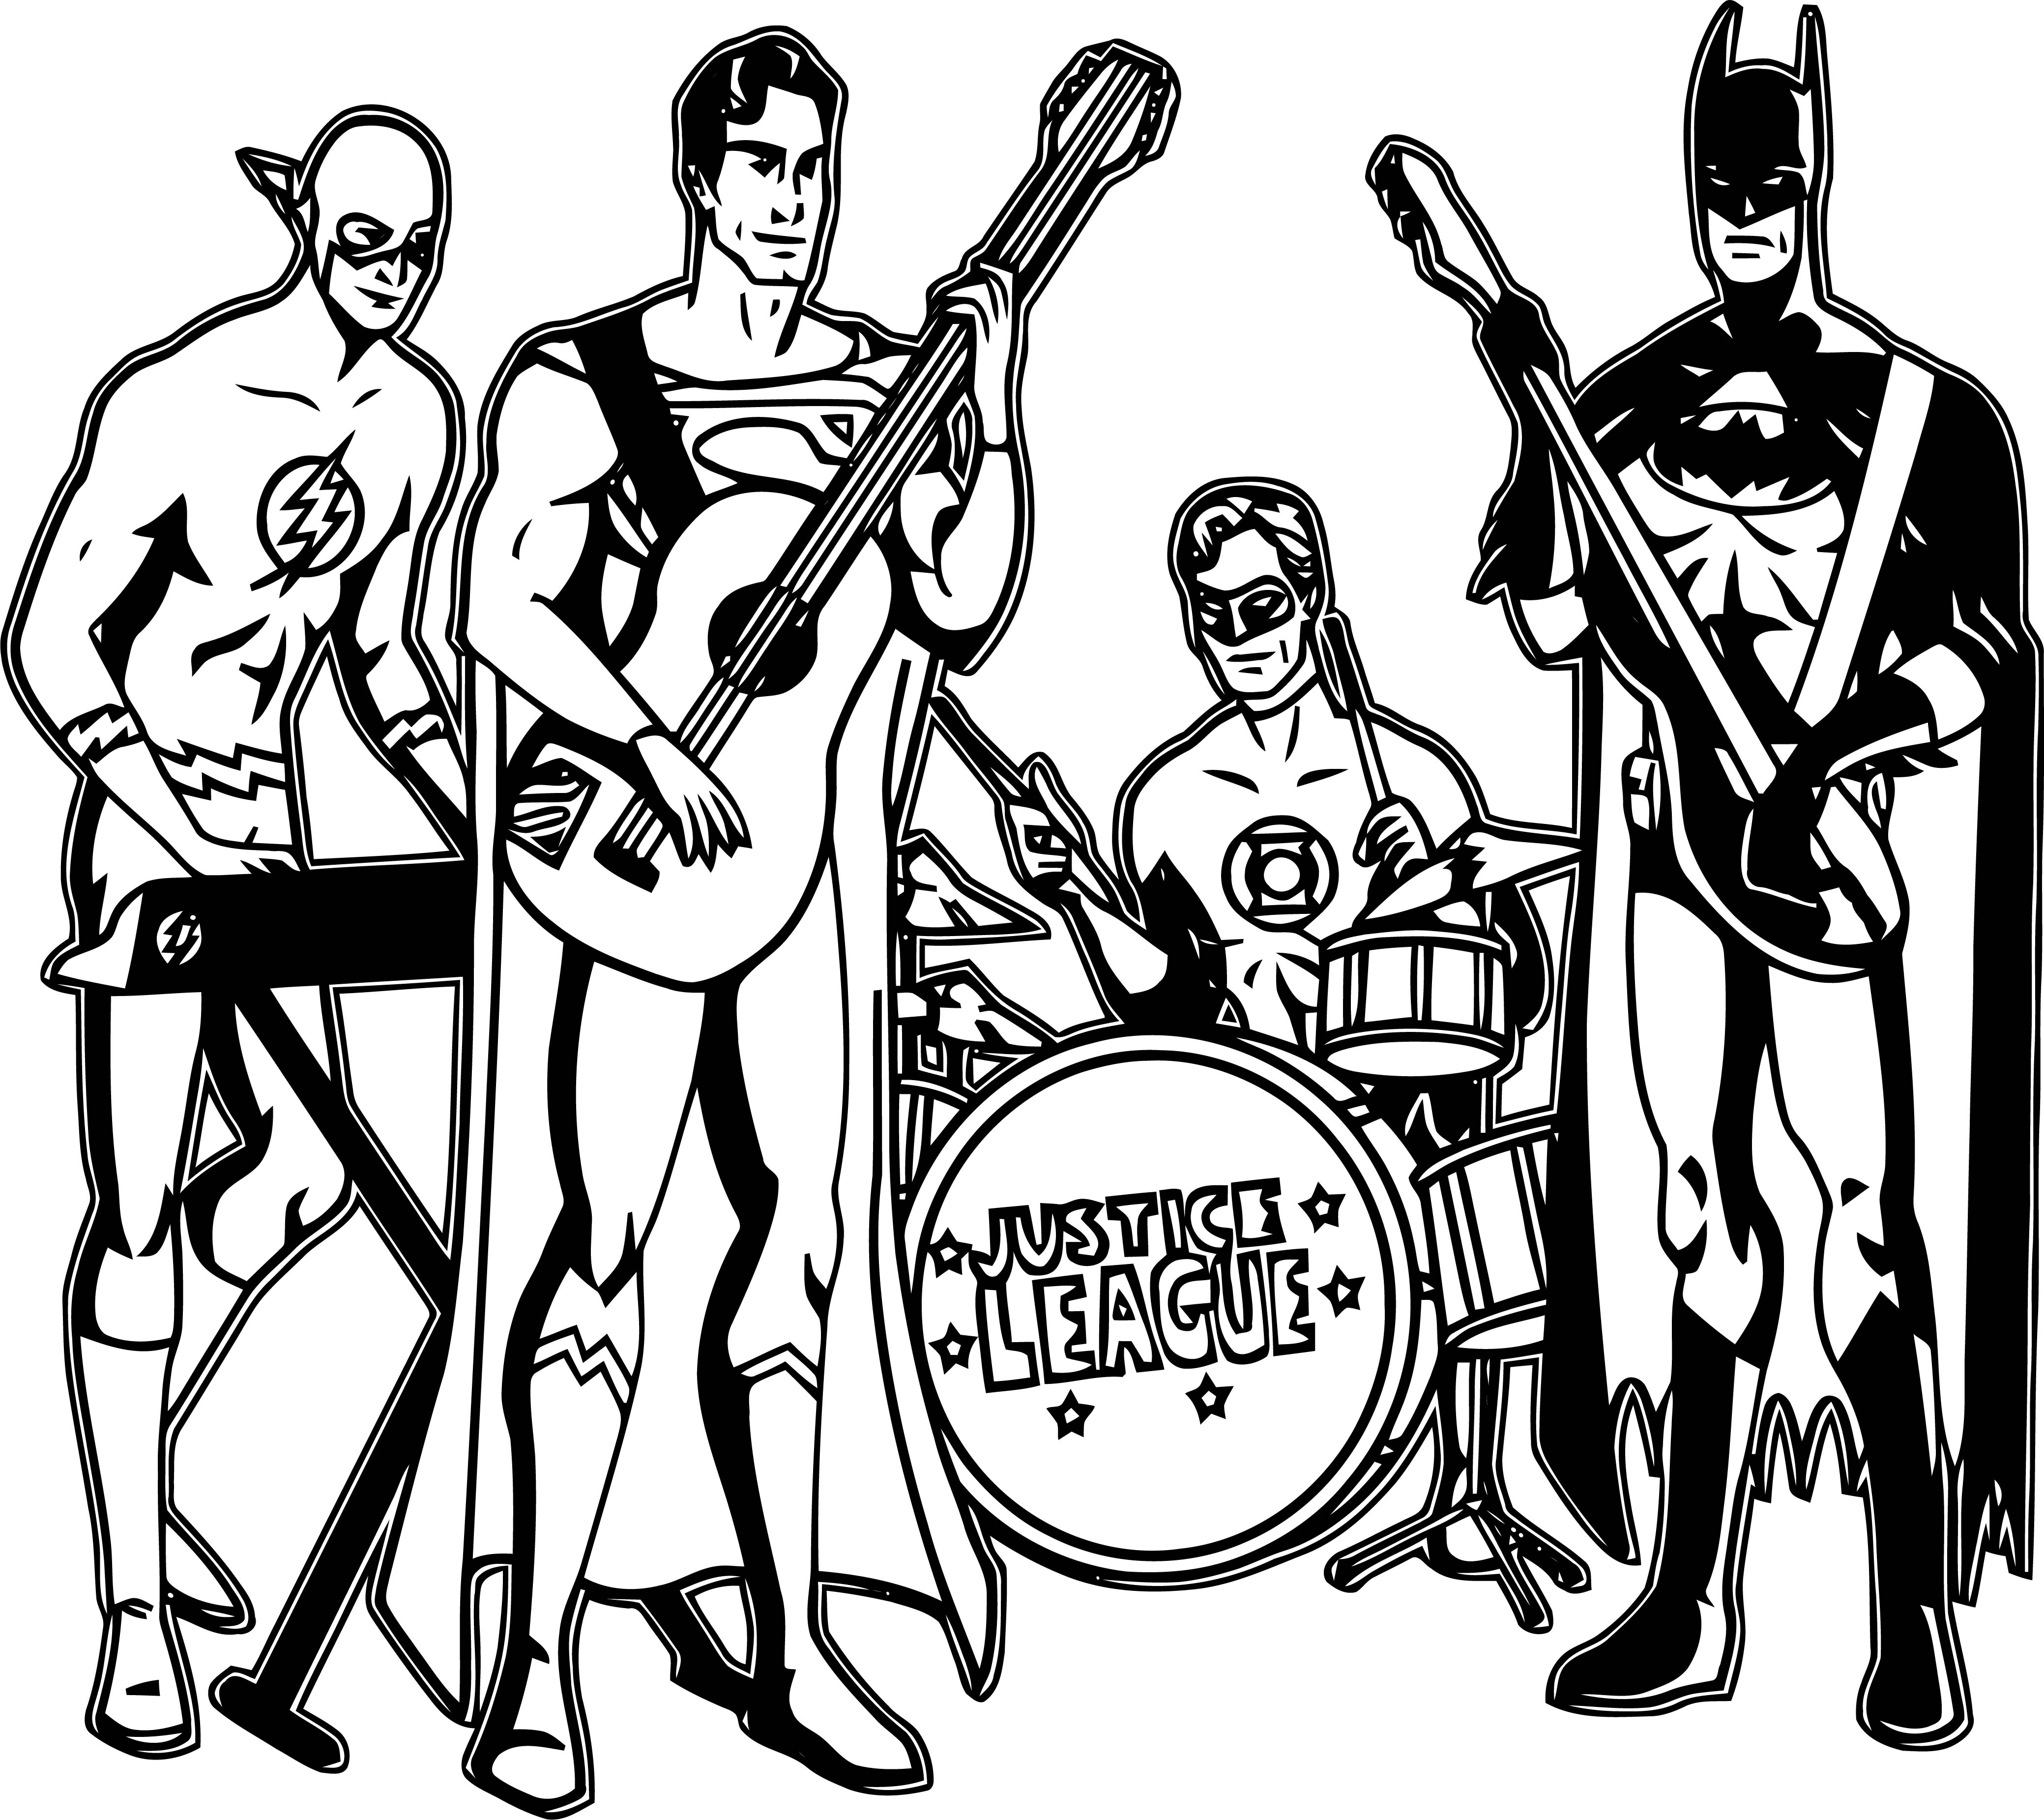 Justice League Coloring Page Wecoloringpage 22